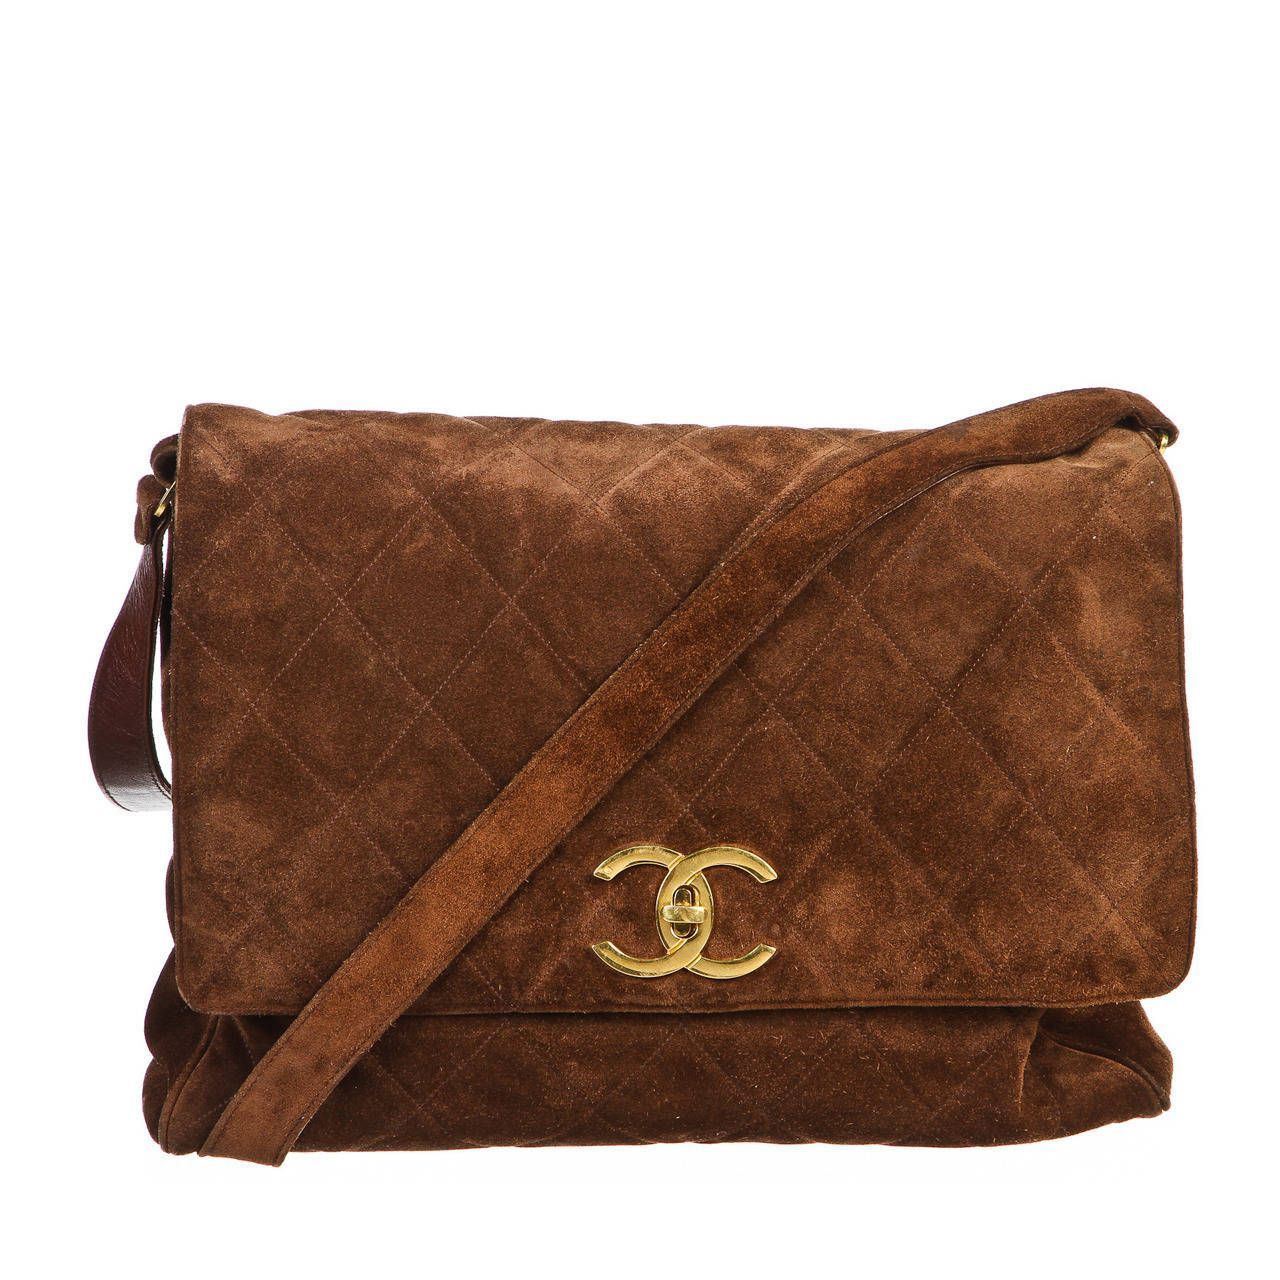 3e4f4e750a3738 Chanel Brown Quilted Suede Vintage Messenger Handbag | From a collection of  rare vintage crossbody bags